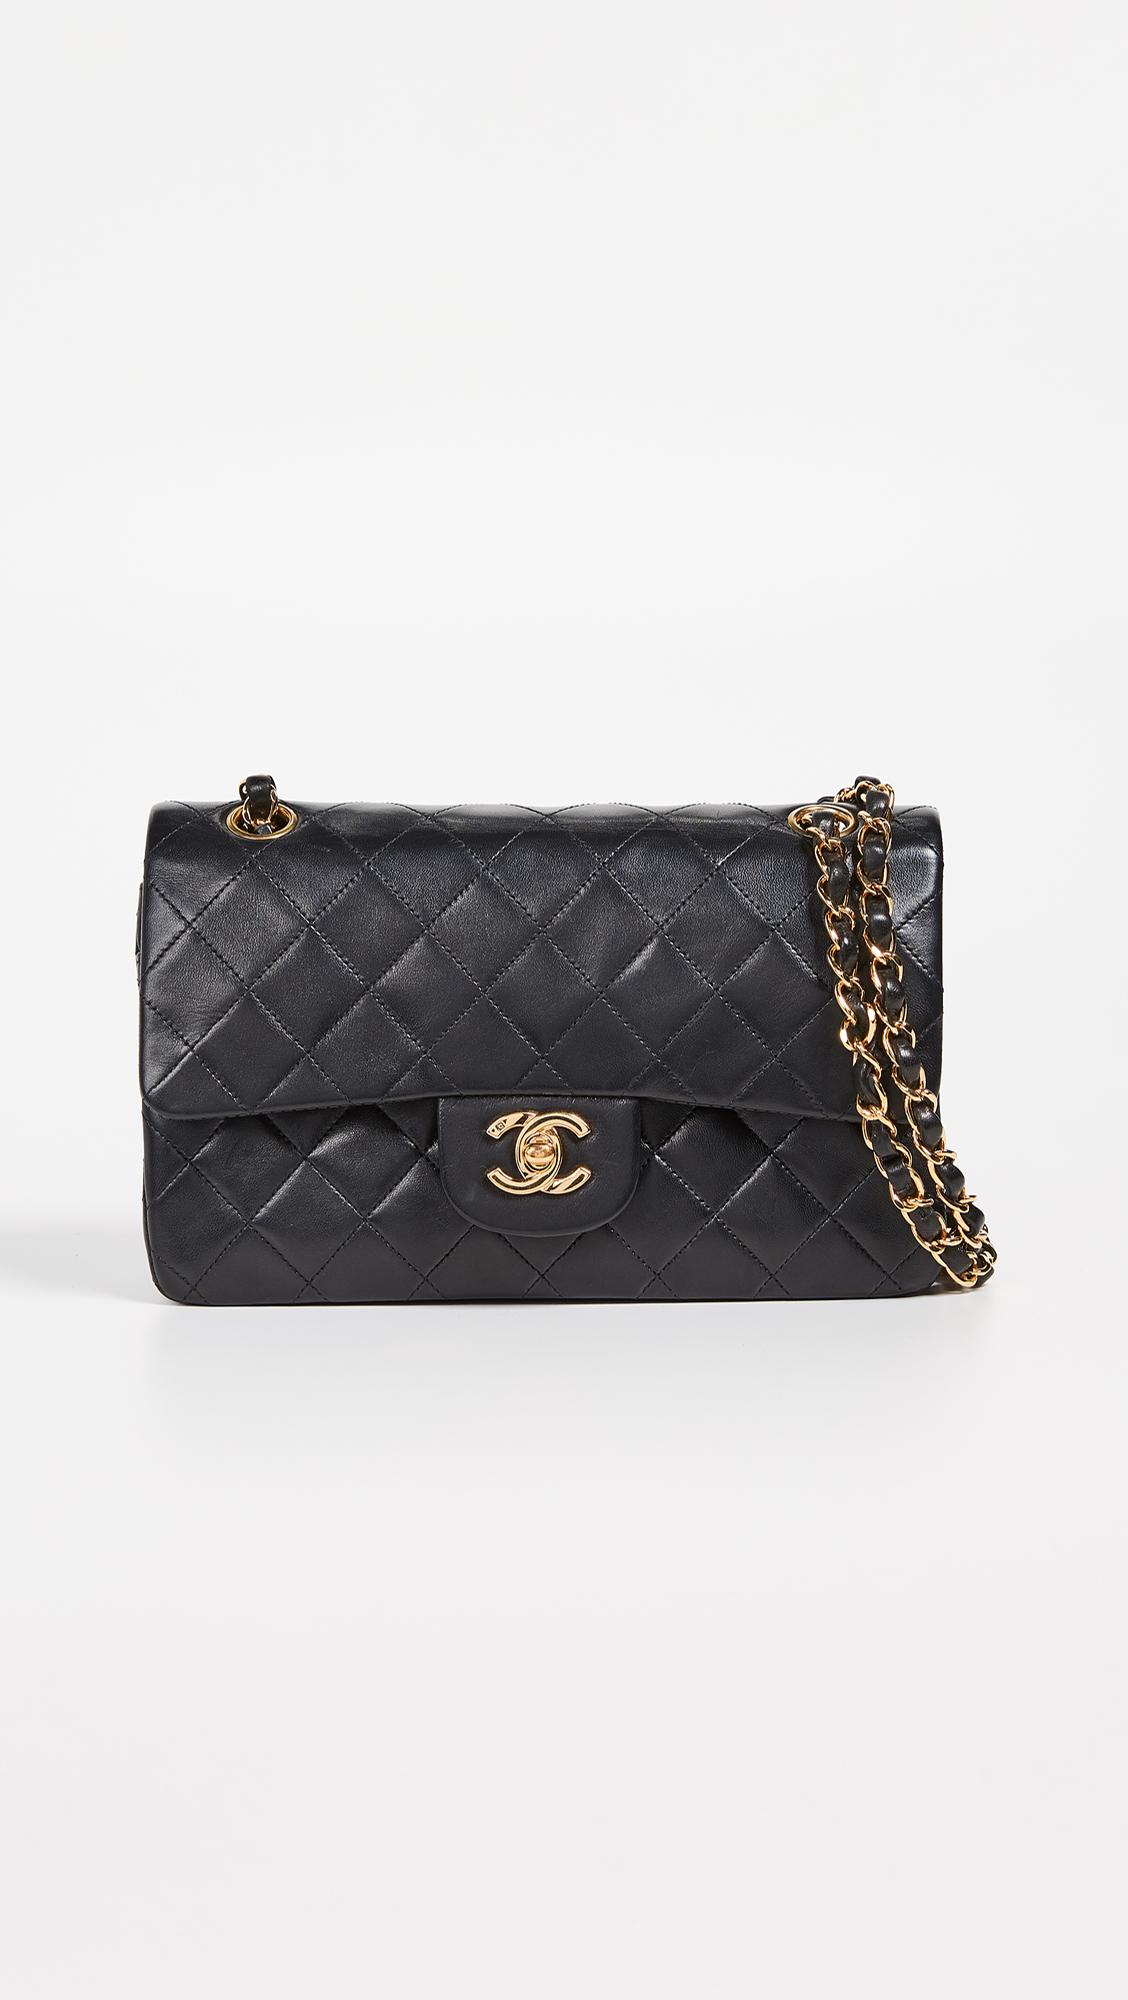 fad34946c806 What Goes Around Comes Around. Women's Black Chanel 2.55 Classic Flap Bag